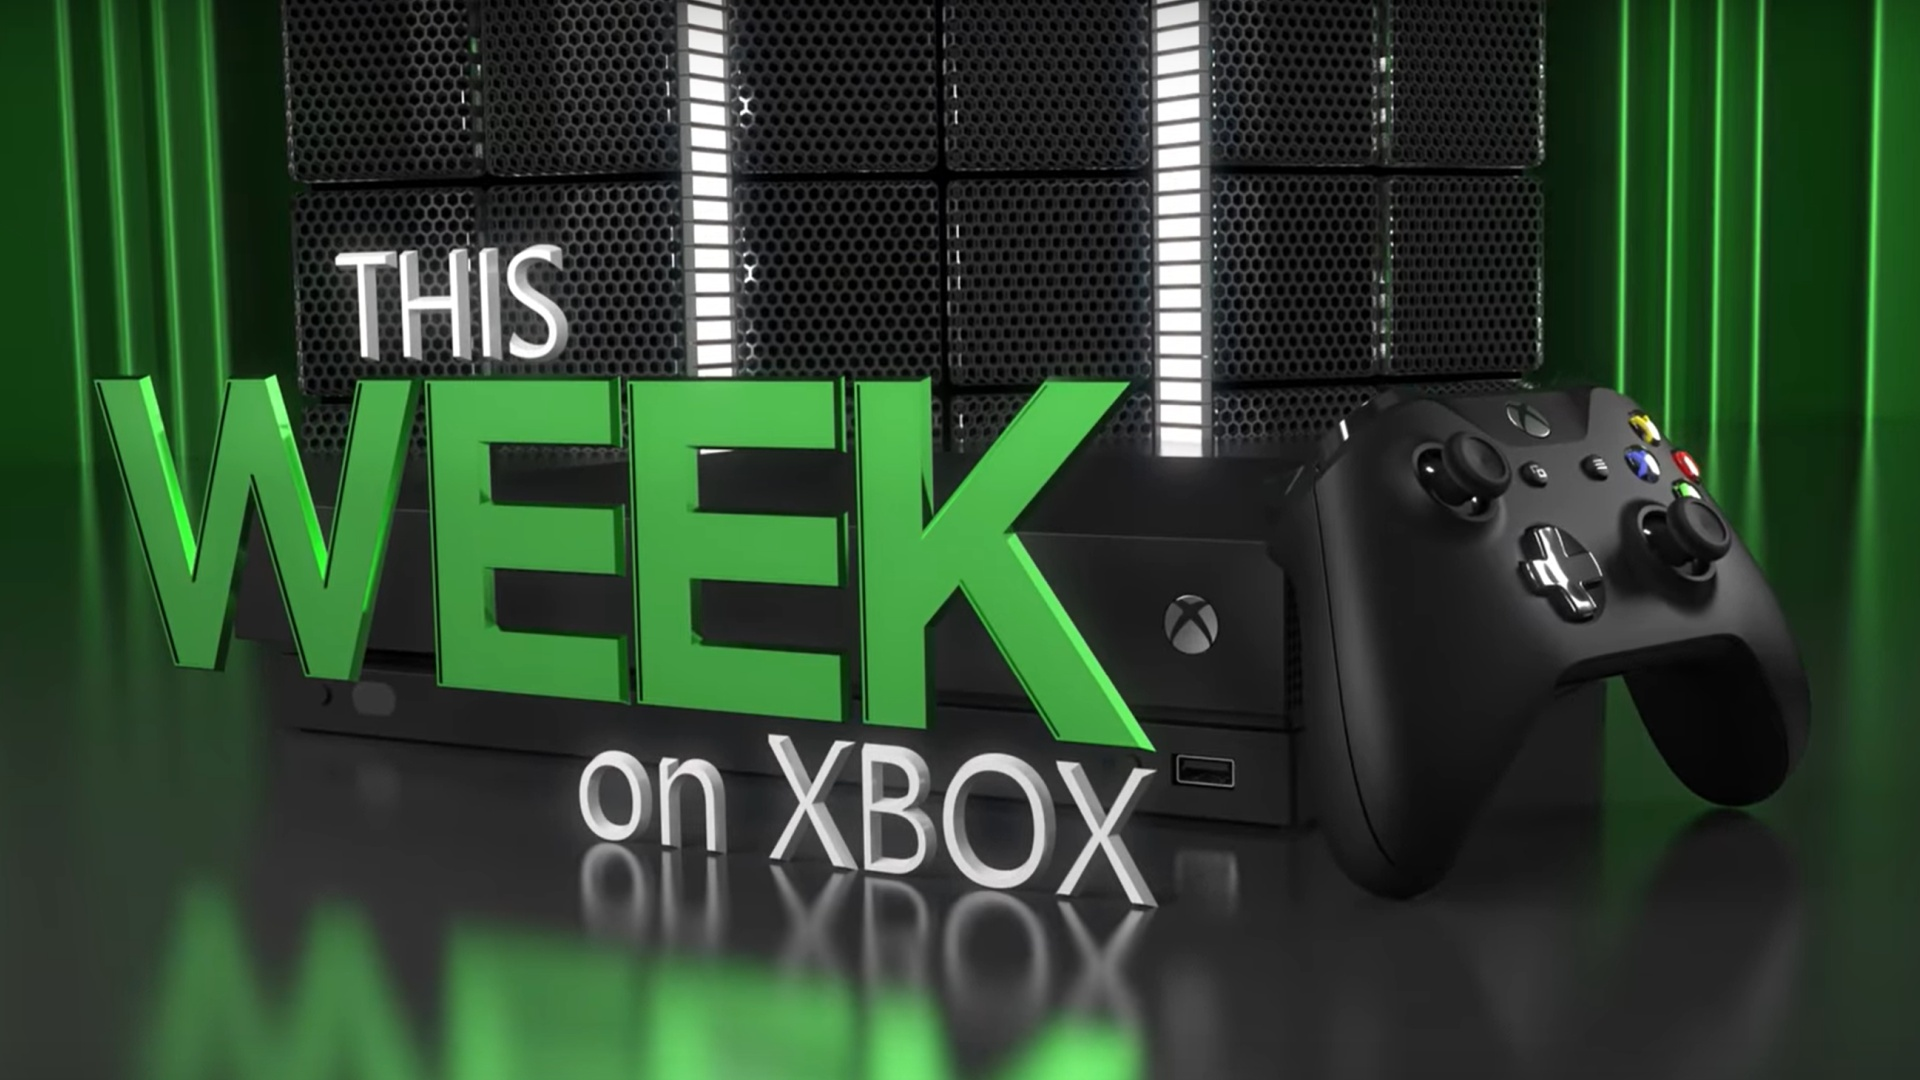 Video For This Week on Xbox: March 27,2020